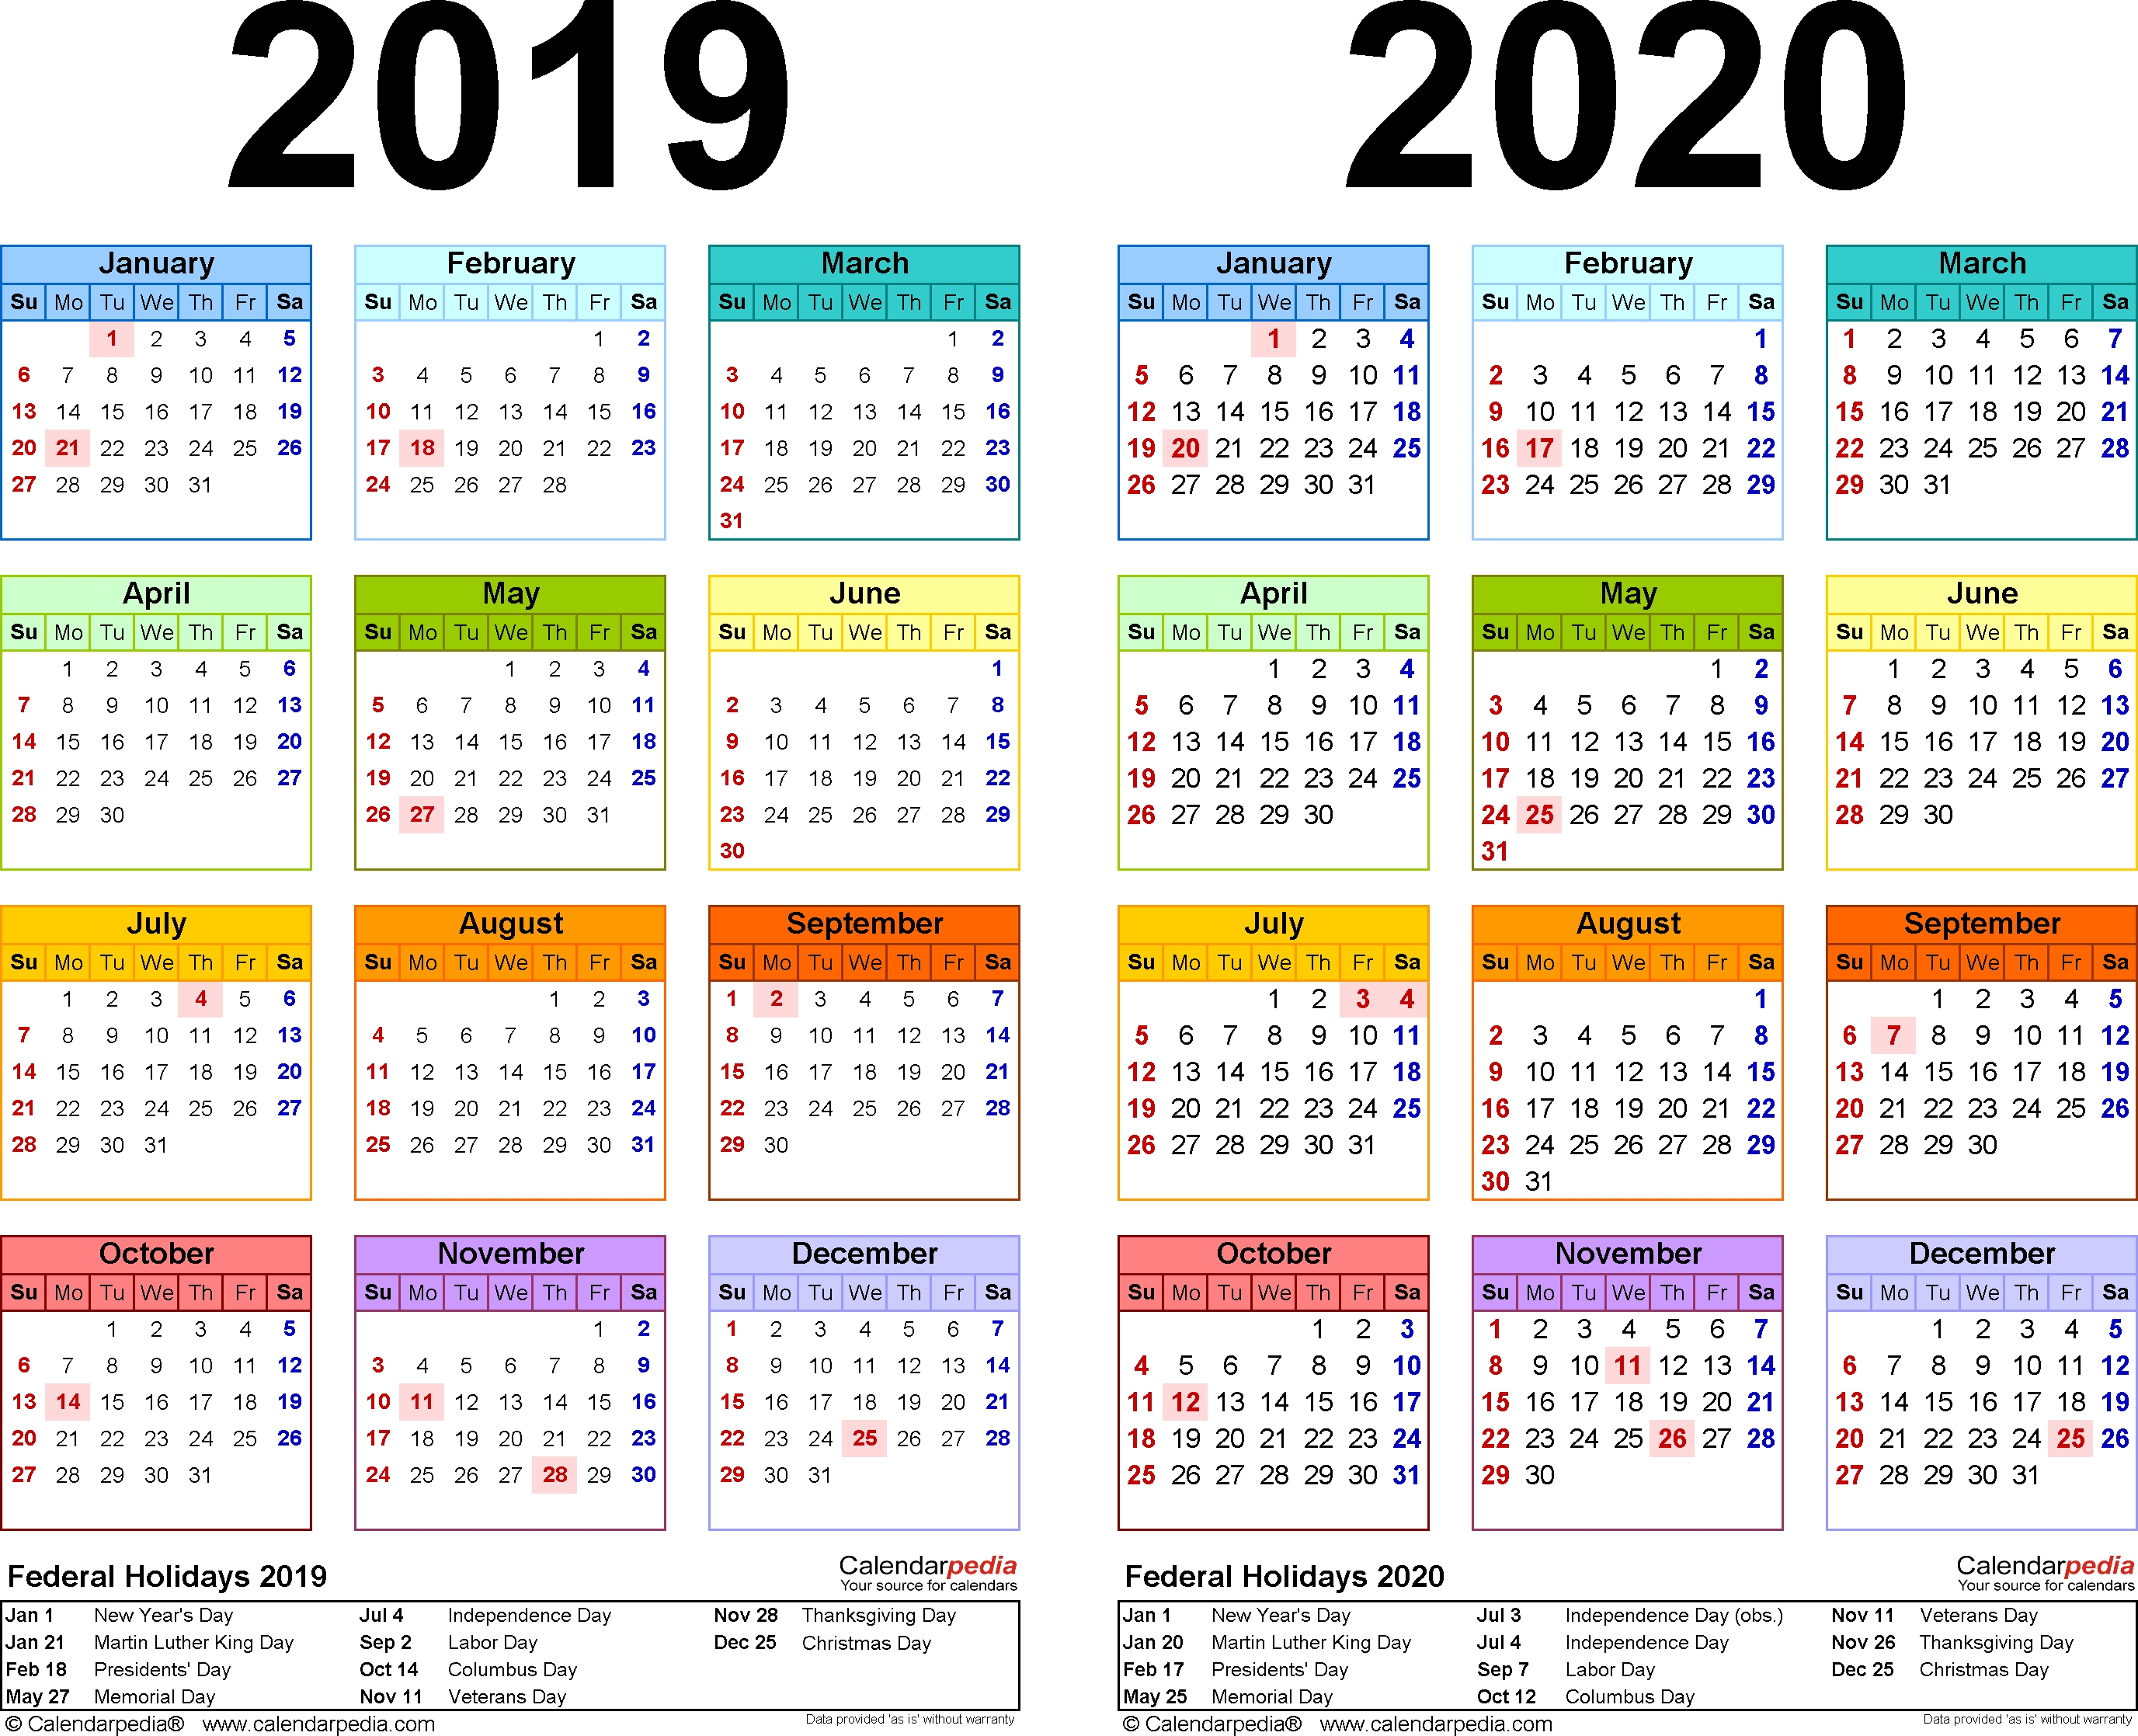 2019-2020 Calendar - Free Printable Two-Year Word Calendars regarding U Of C Calendar 2019/2020